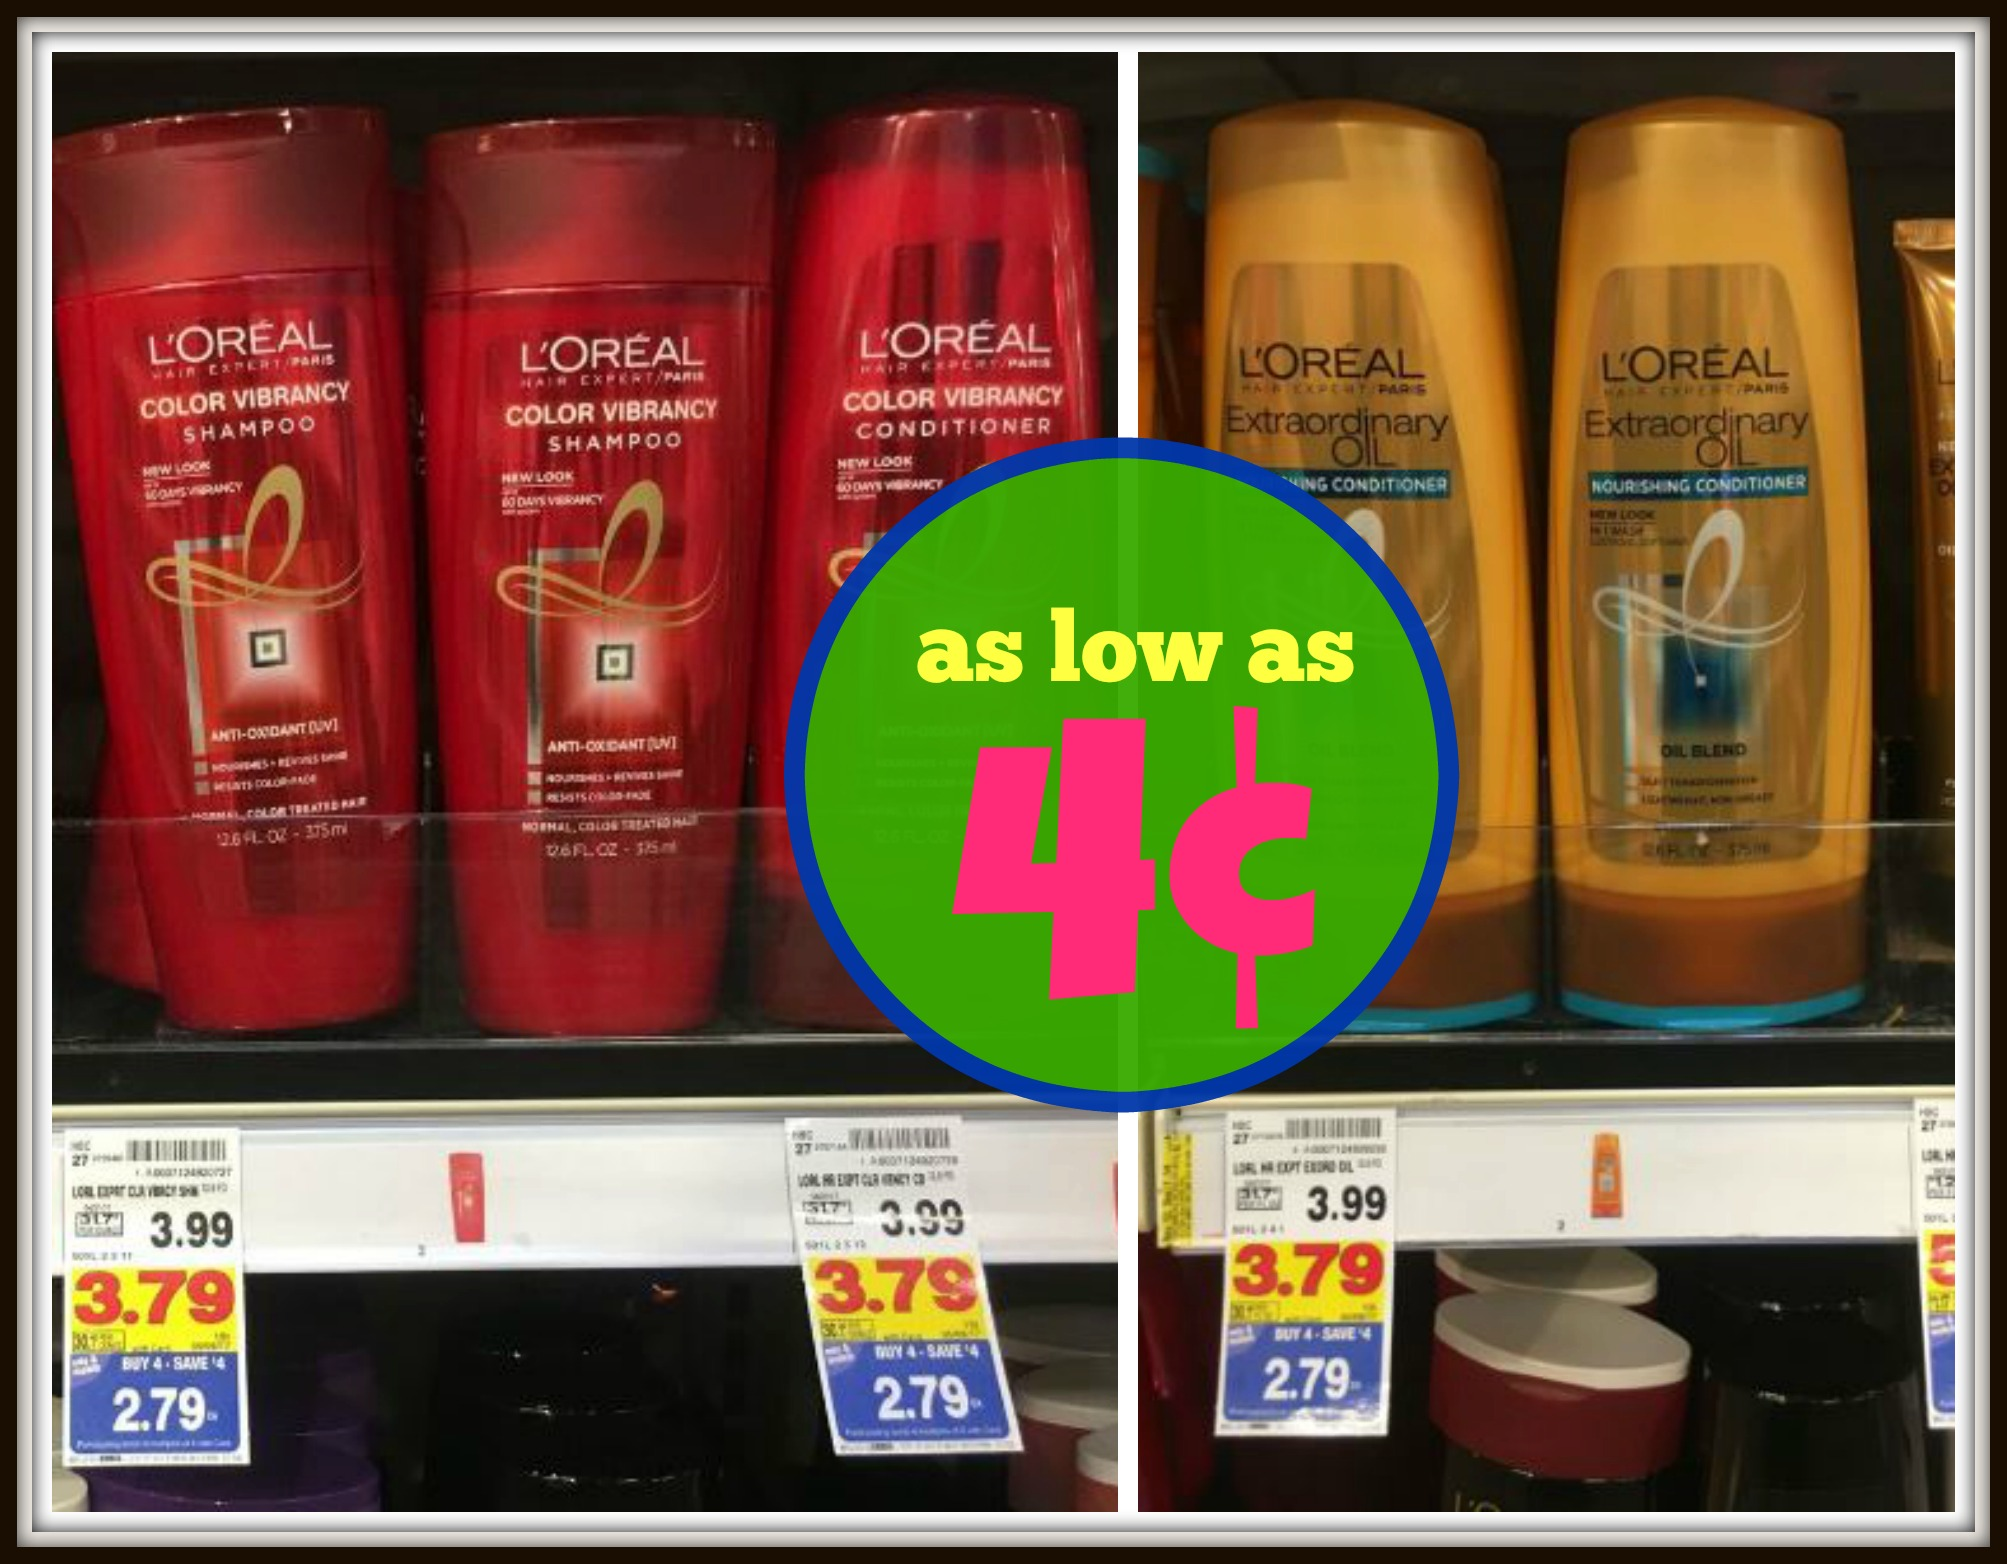 L'Oreal Hair Expert Shampoo & Conditioner as low as $0.04 with Kroger Mega Event!! - Kroger Krazy